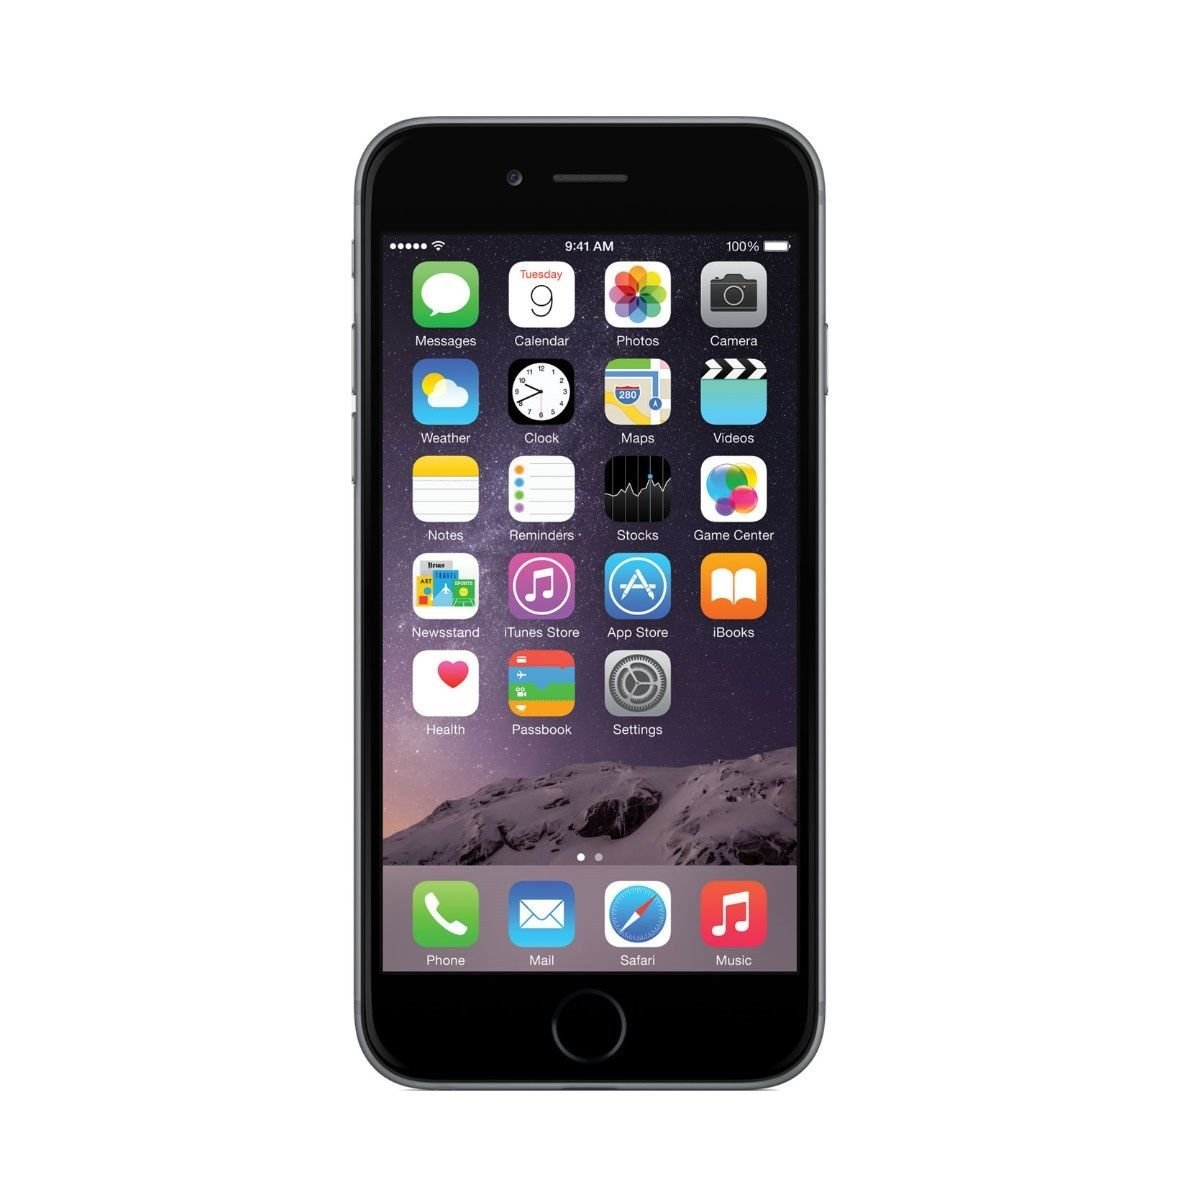 iphone 6 verizon wireless apple iphone 6 16gb verizon wireless 4g lte 8mp 15108